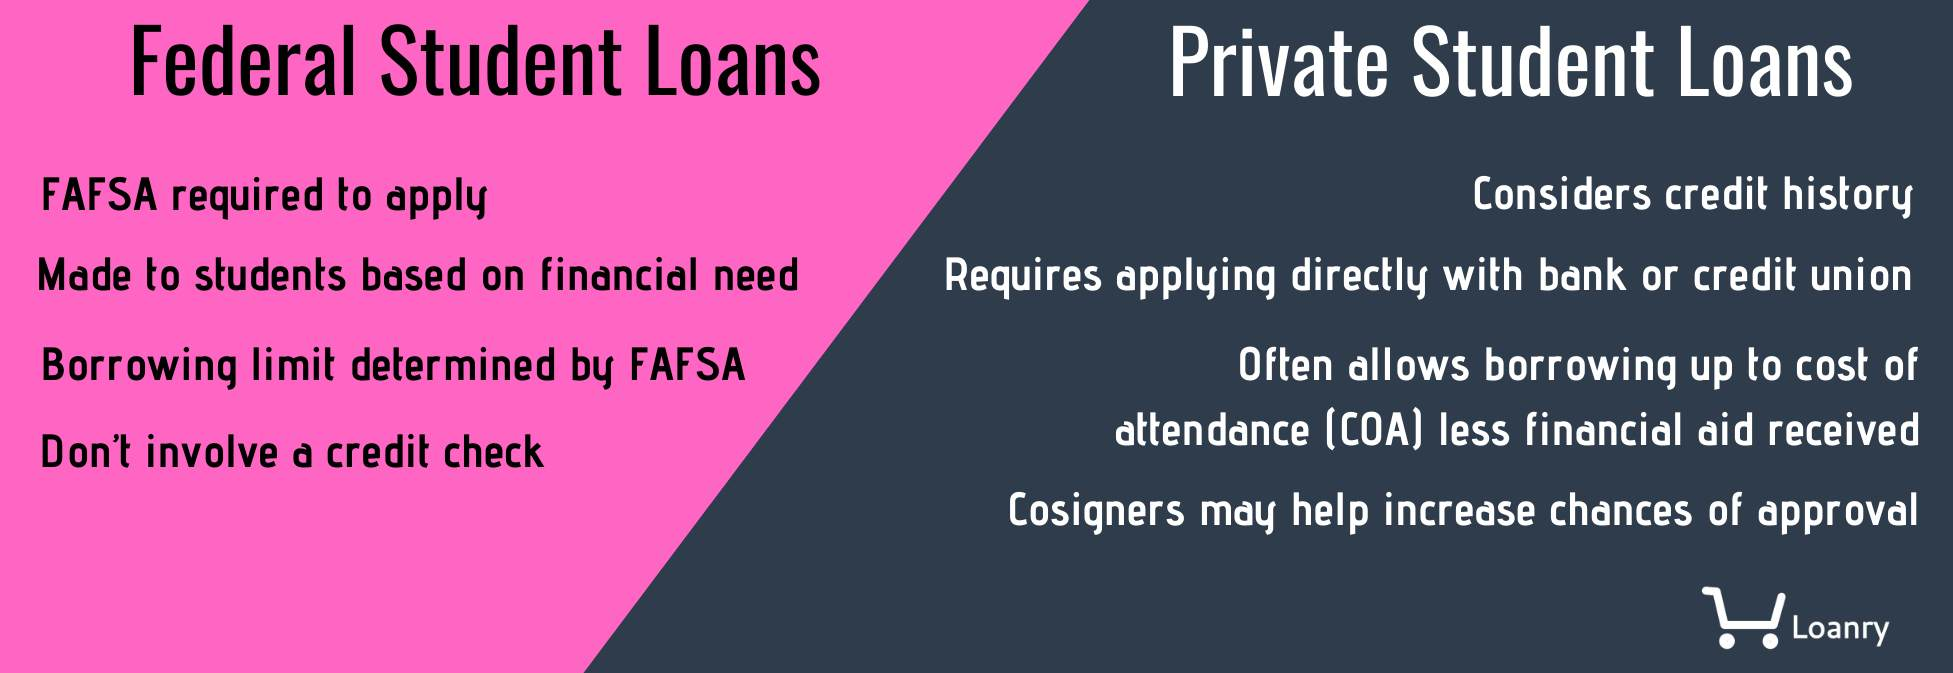 Federal and Private student loan features